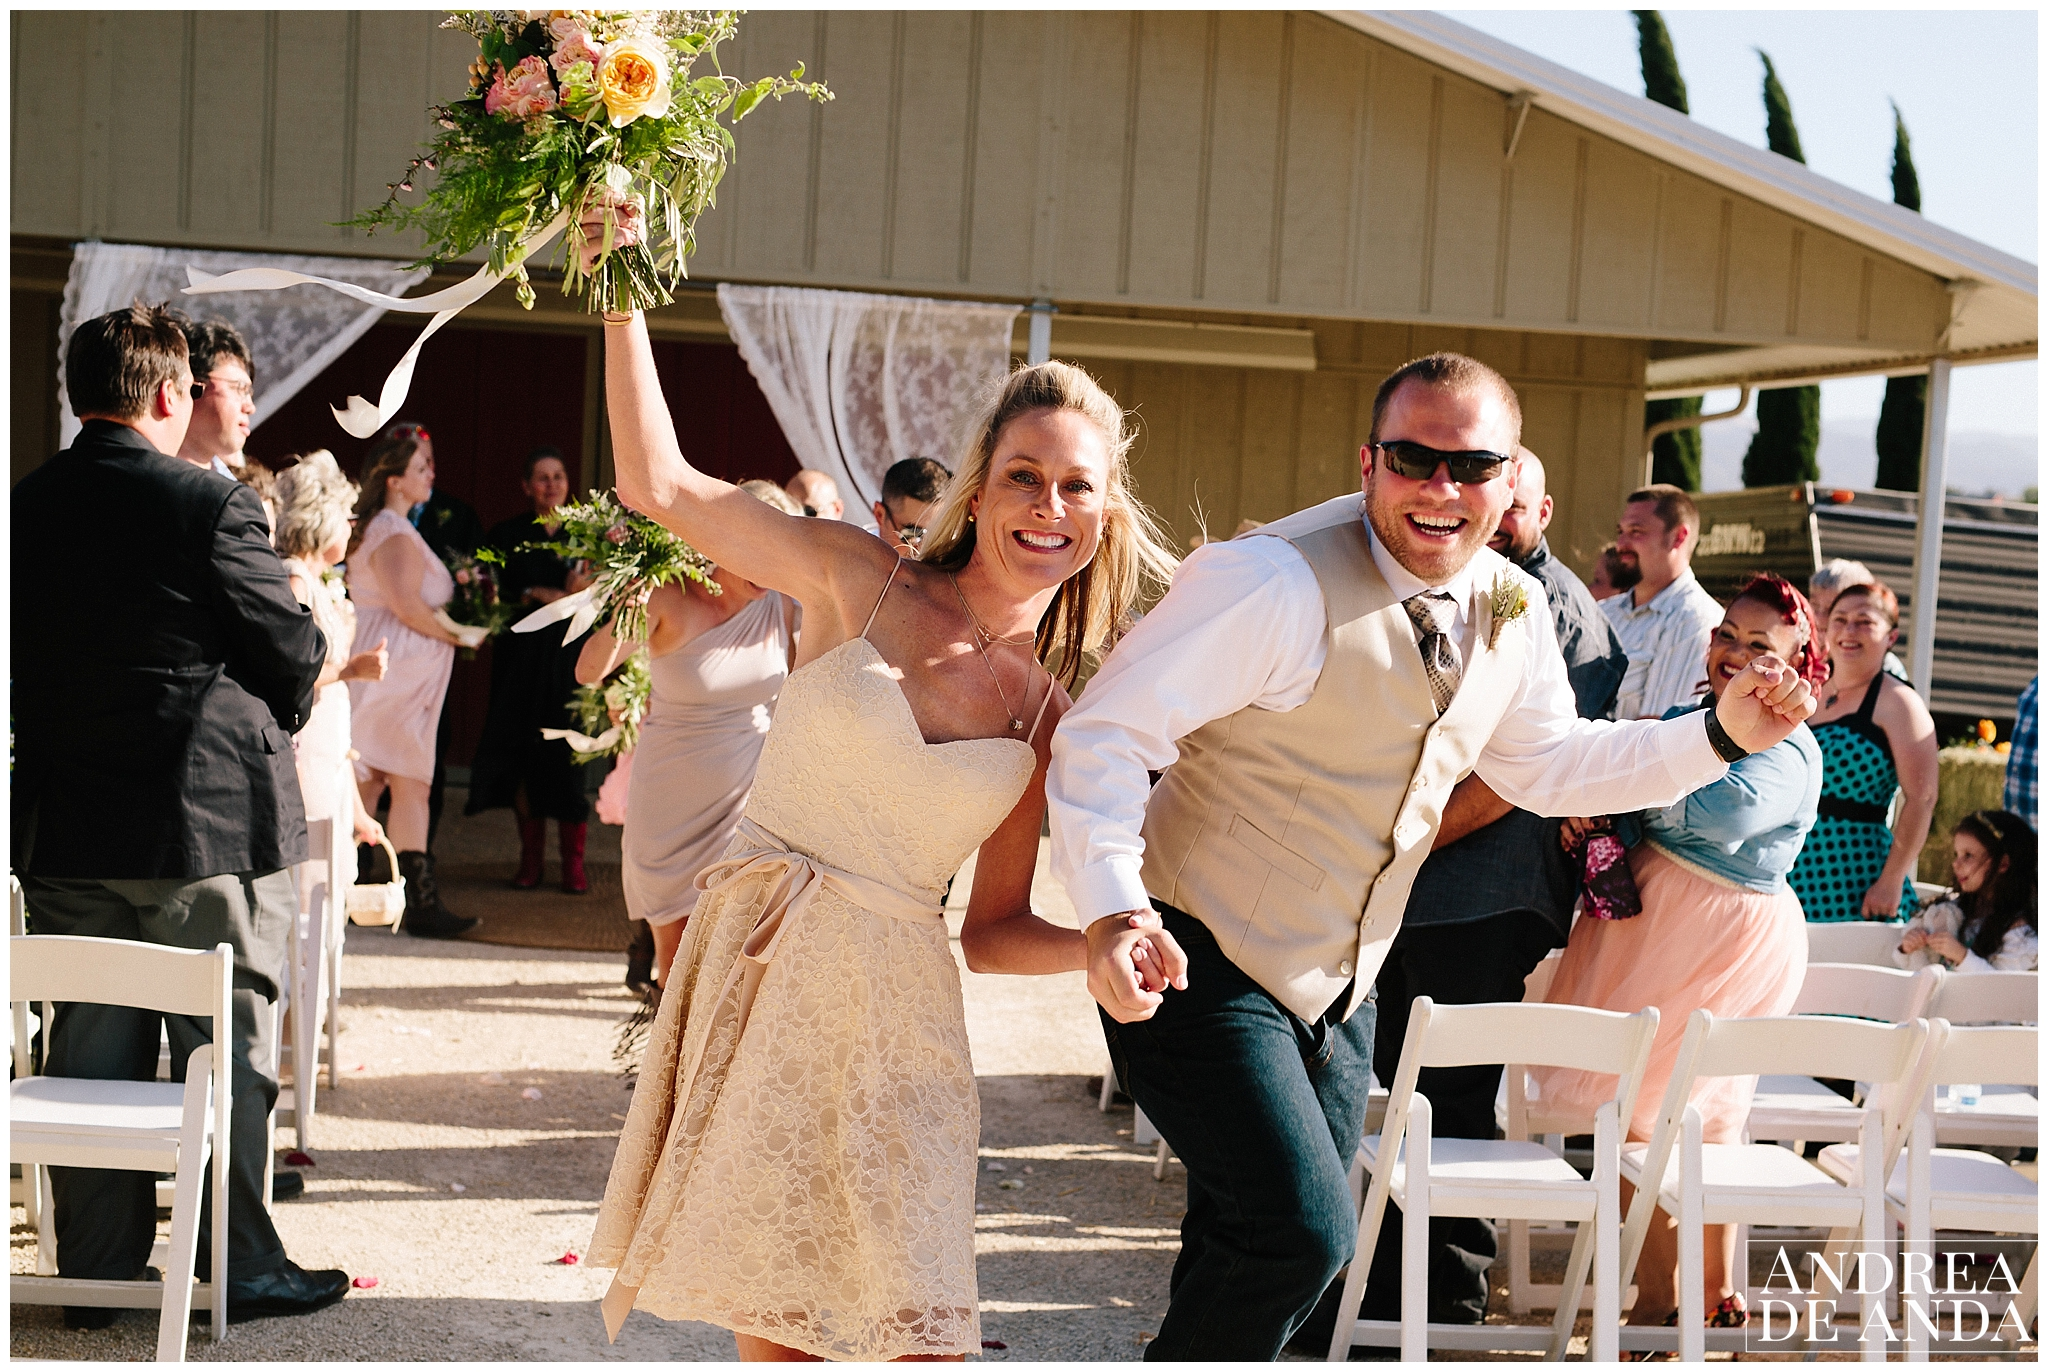 Santa Ynez Valley back yard wedding_Andrea de Anda Photography__0046.jpg